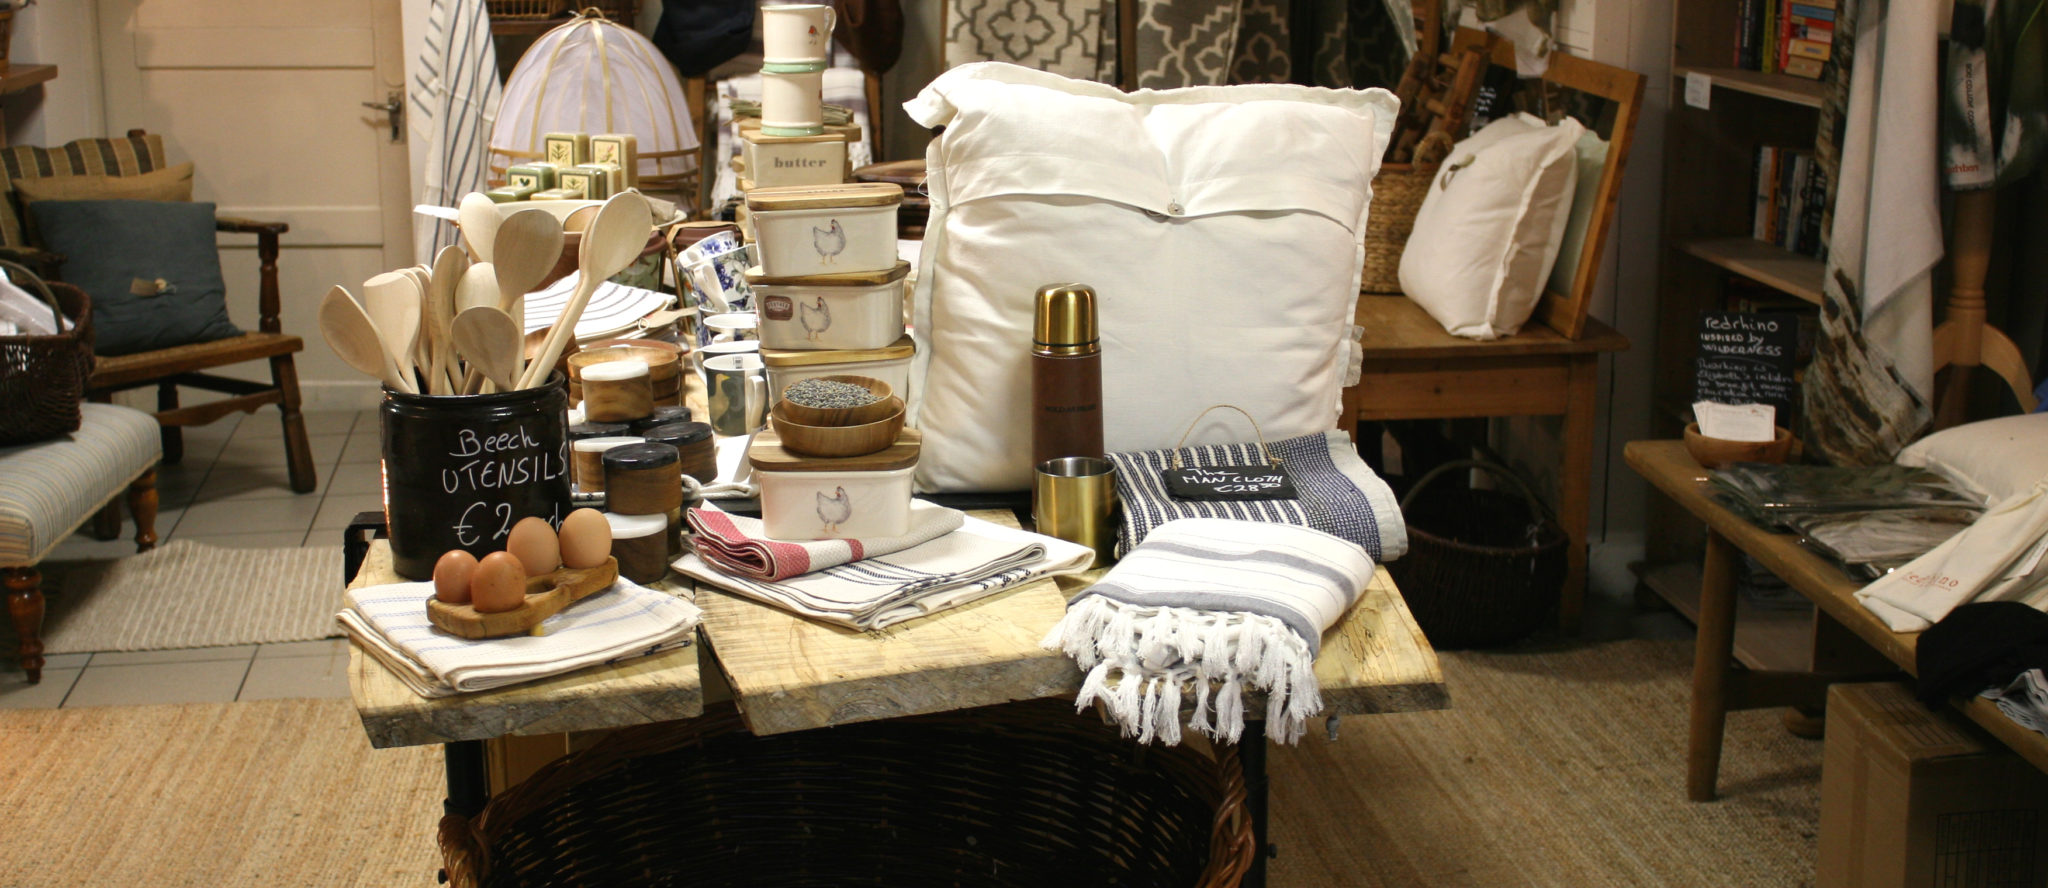 Kitchen Textiles at Sullivans Country Grocer